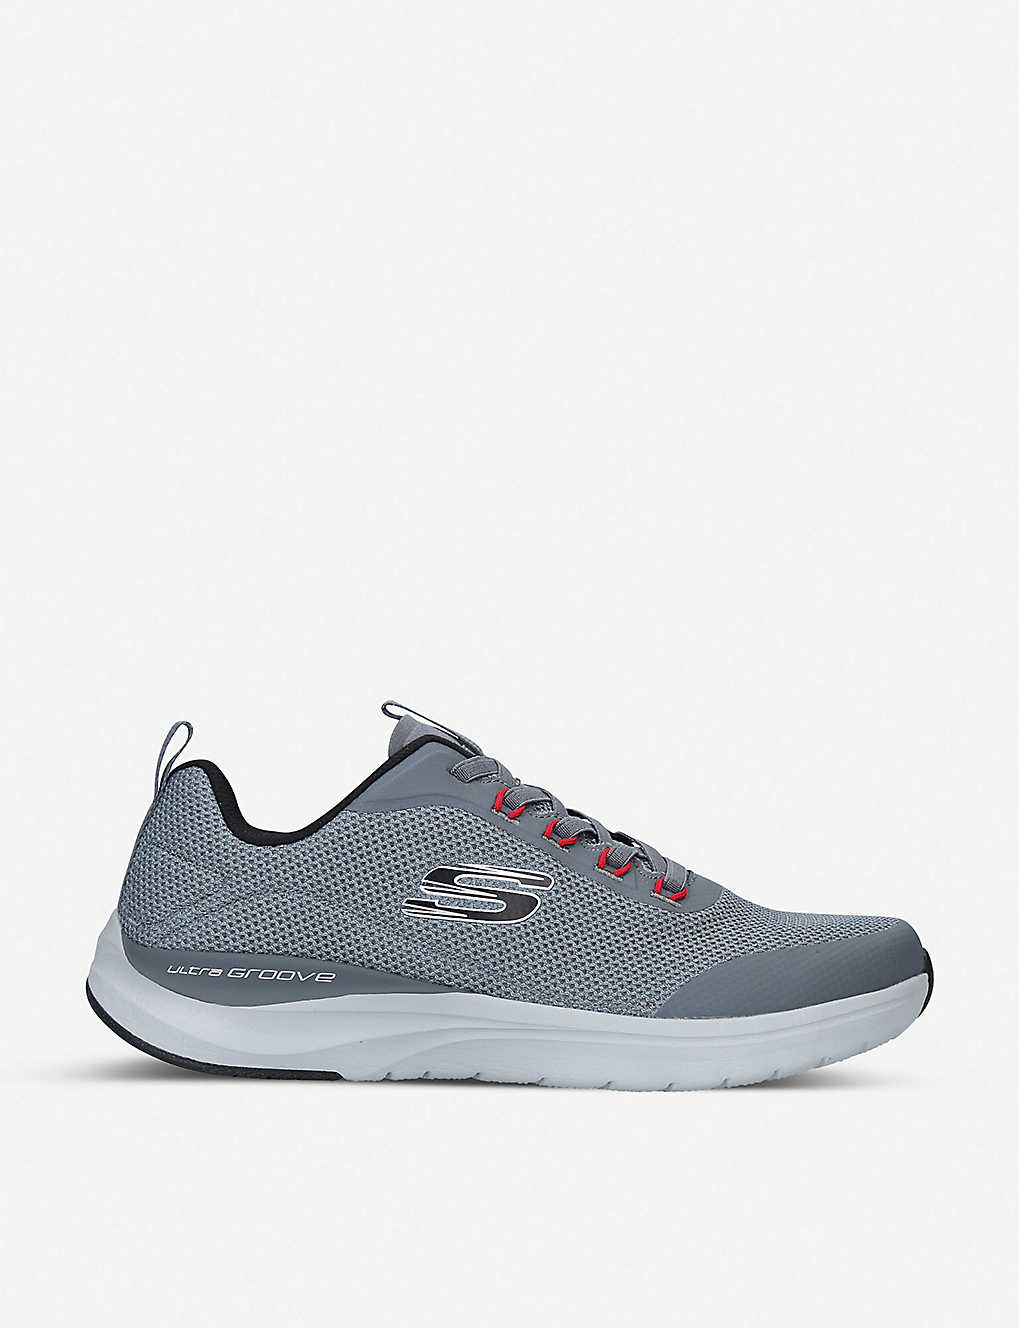 SKECHERS: Ultra Groove Live Session mesh trainers